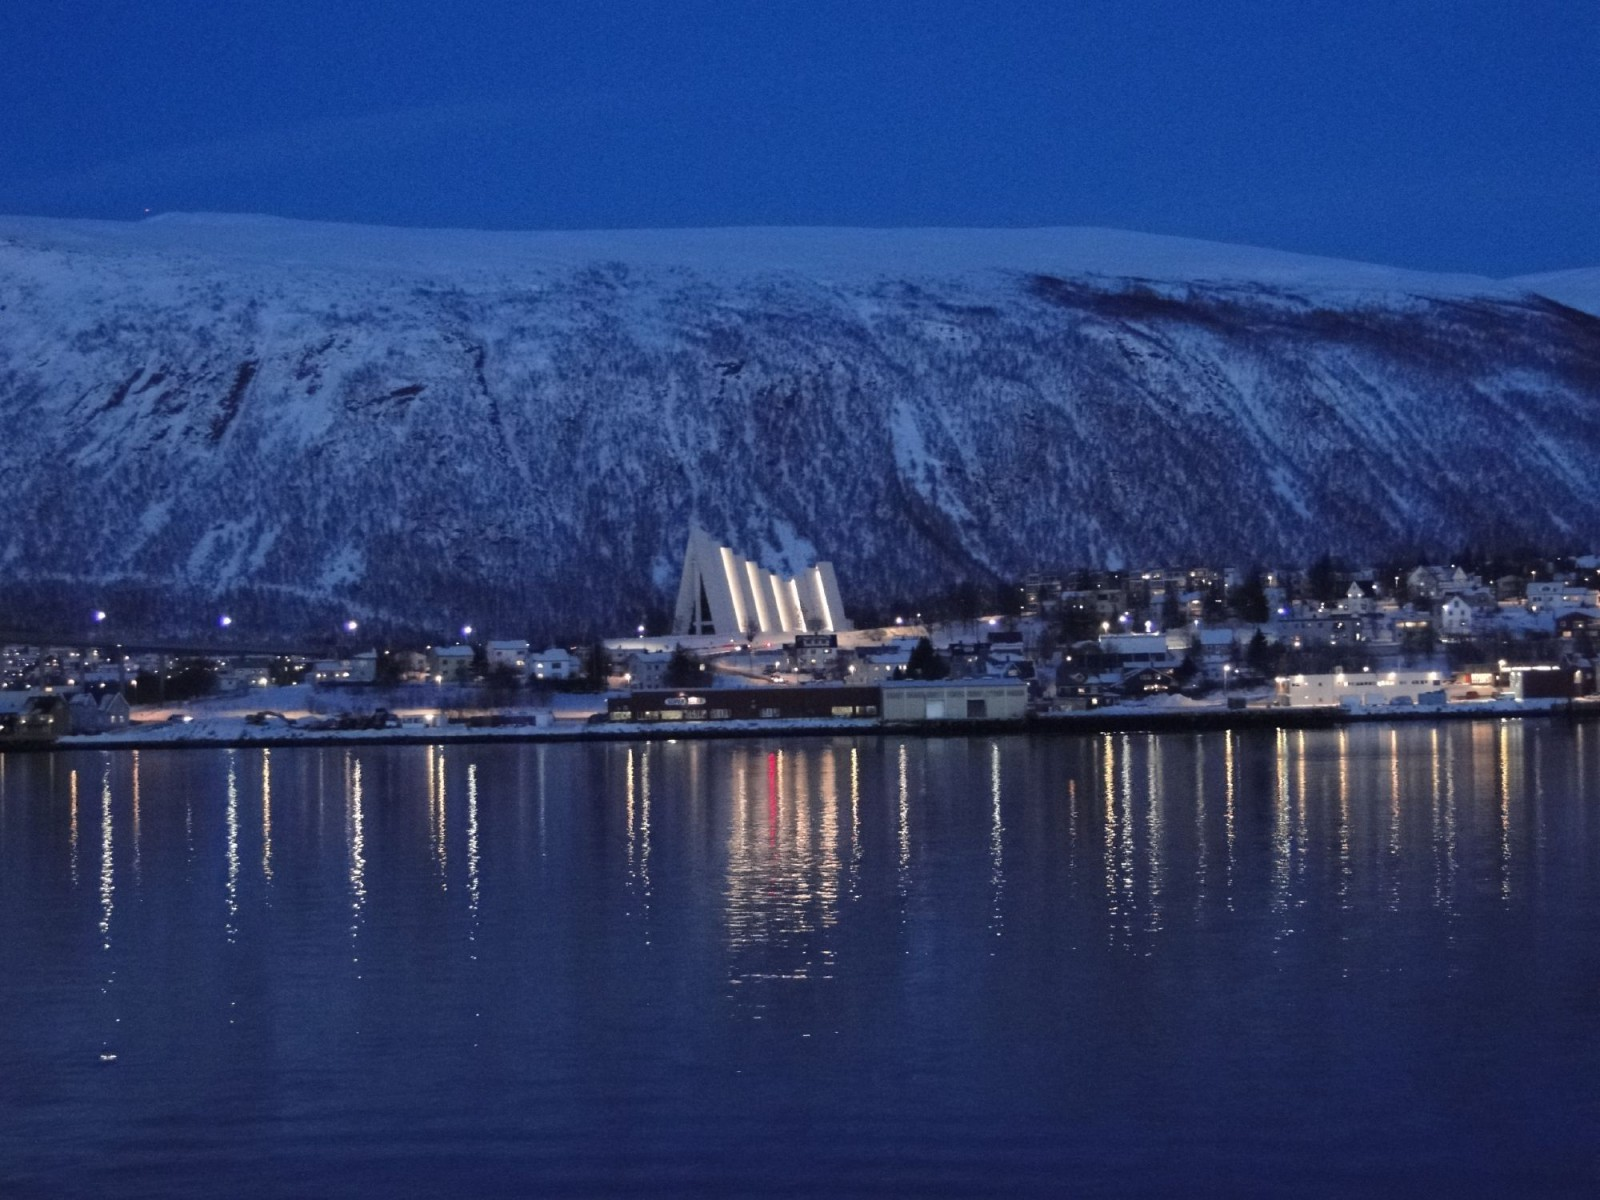 The Artic Cathedral at Tromso. Late afternoon before sailing north, the daylight had faded quickly leaving a beautiful blue glow with the lights of the cathedral providing lovely reflections on the water.